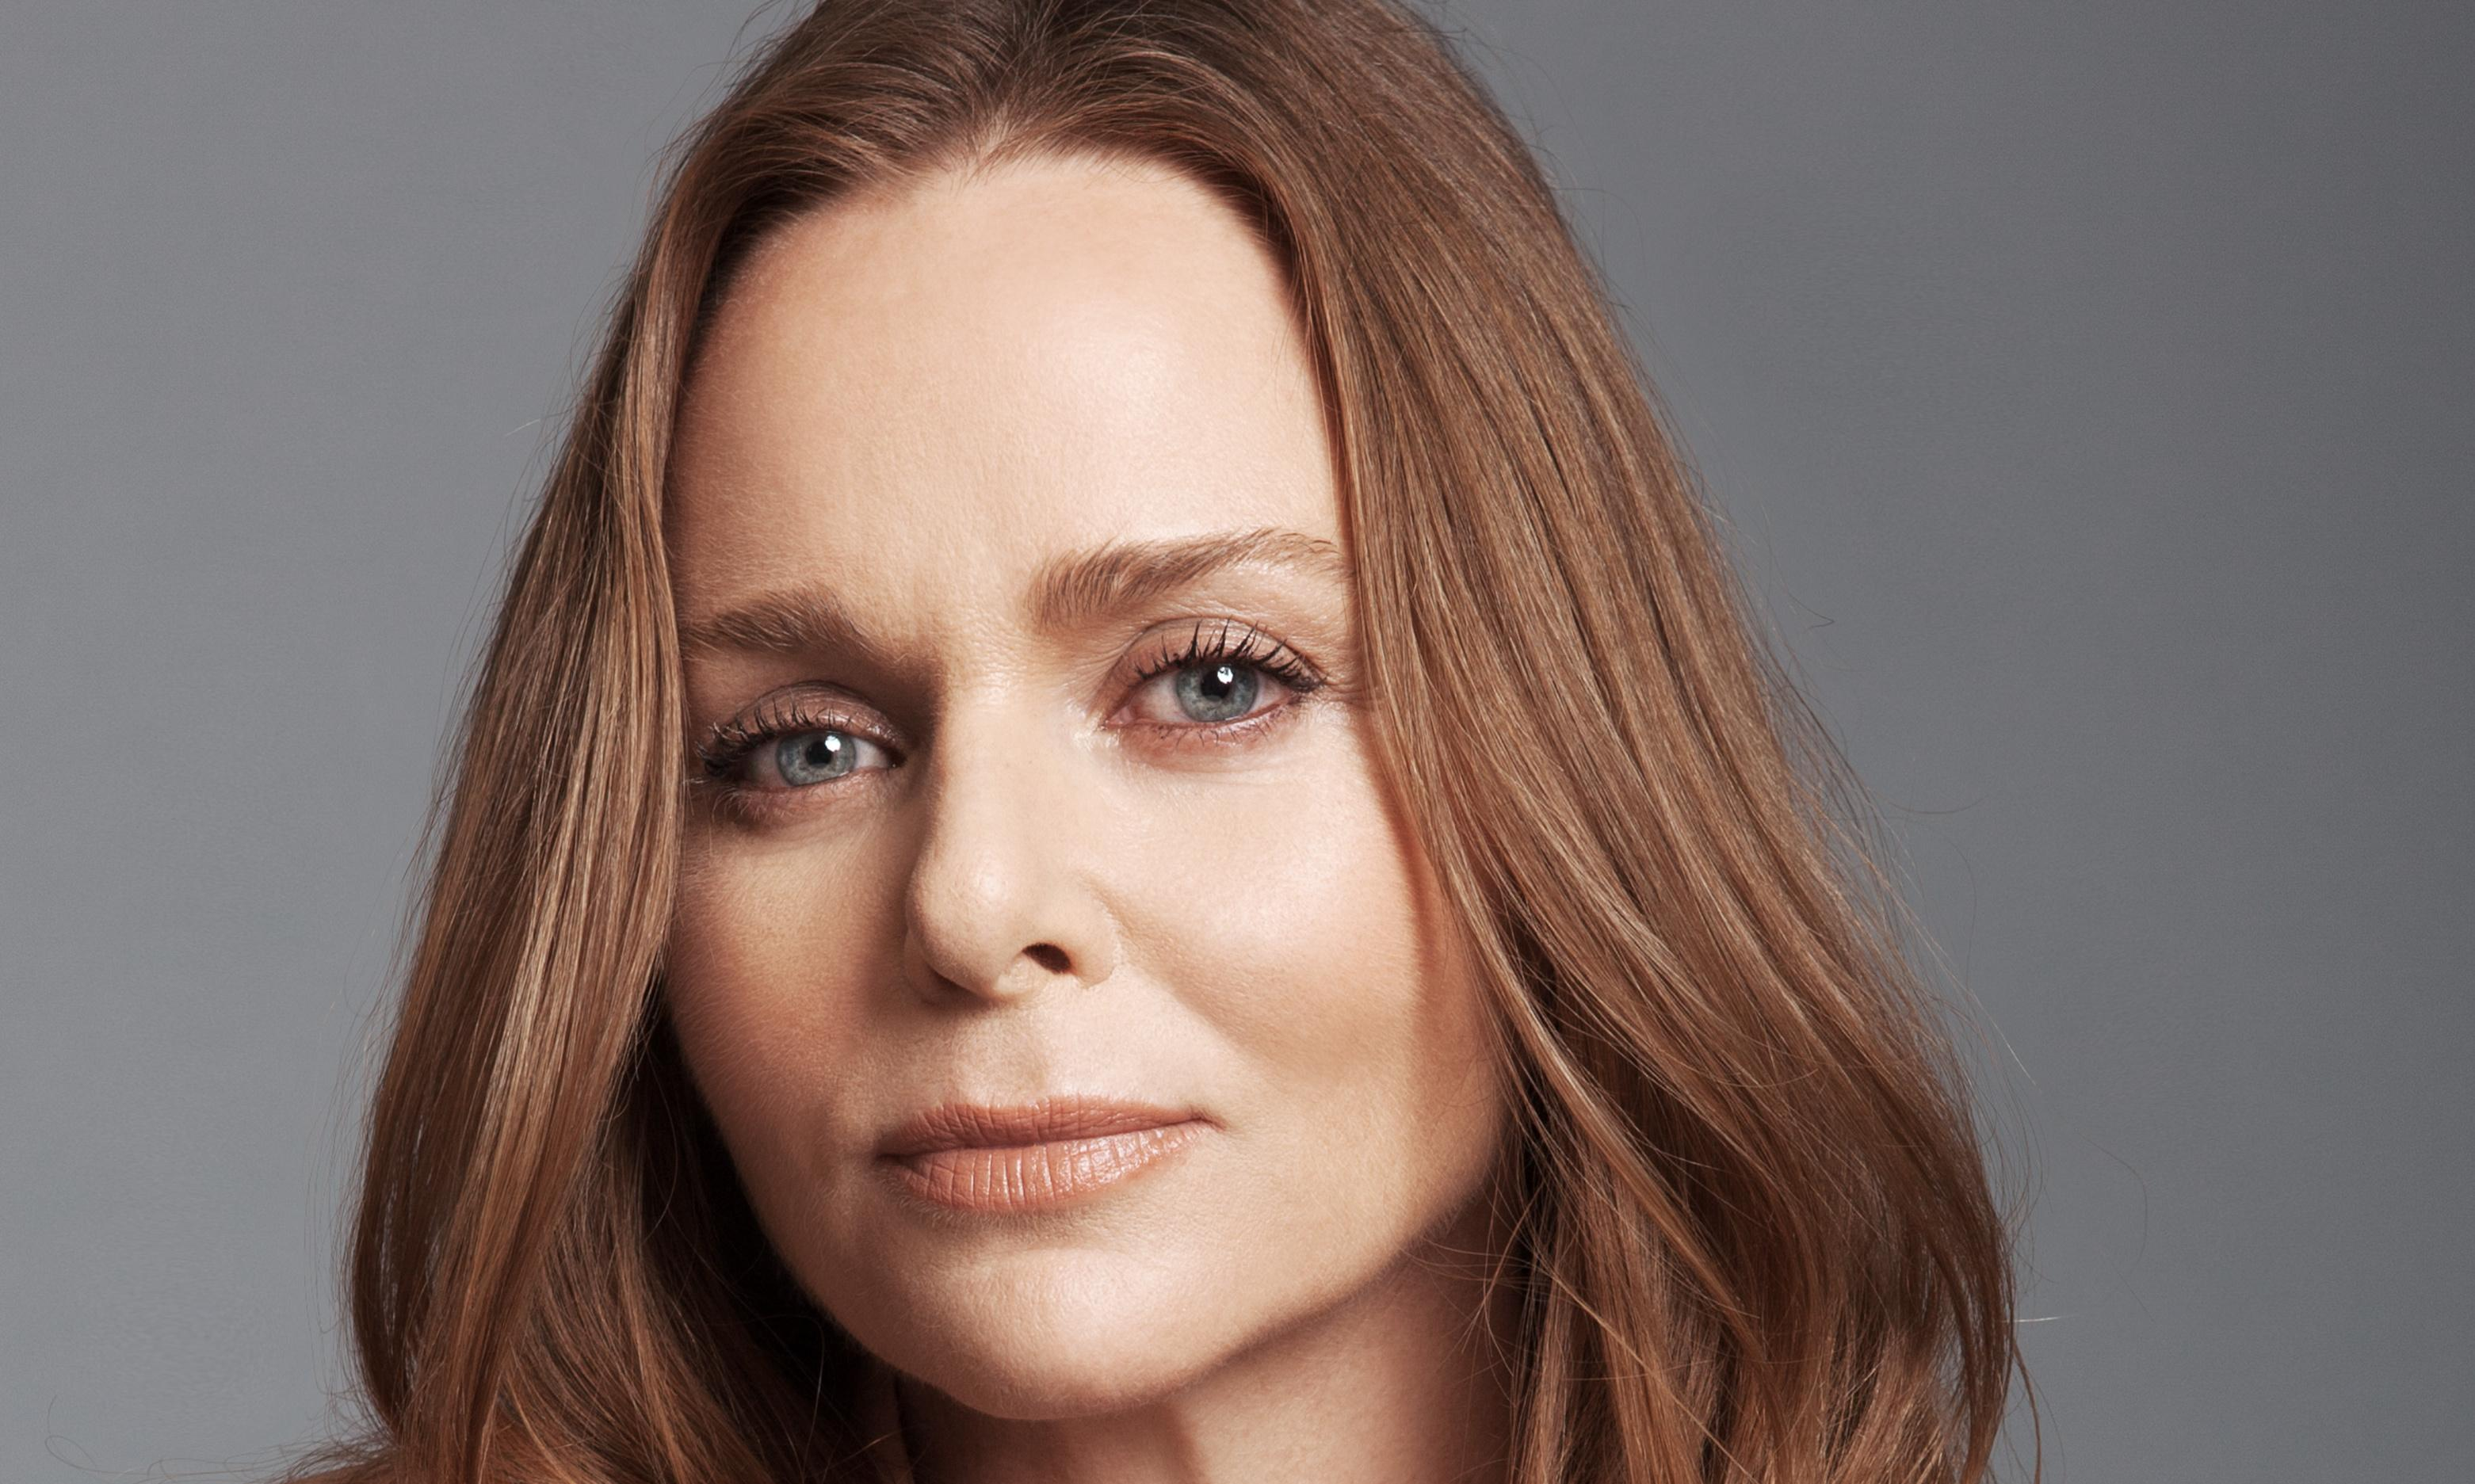 Stella McCartney: 'It's not like I'm here for an easy life'